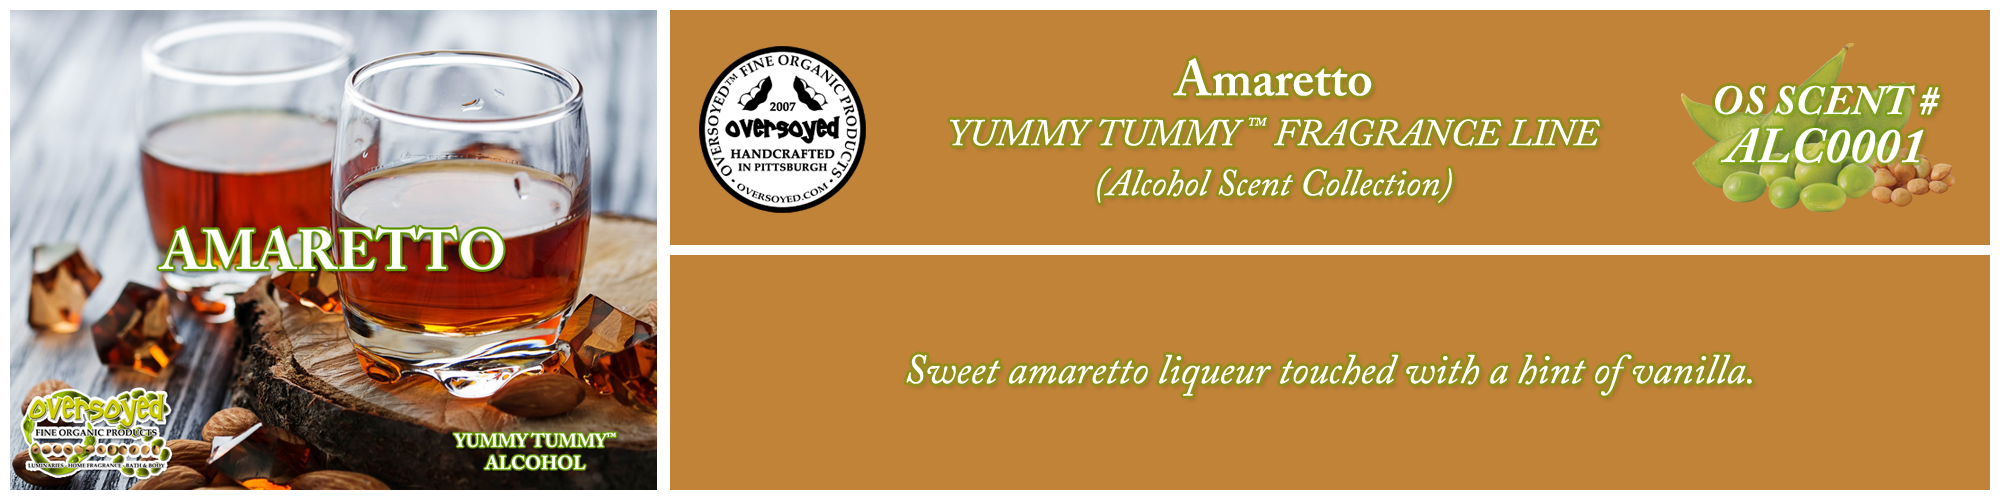 Amaretto Handcrafted Products Collection